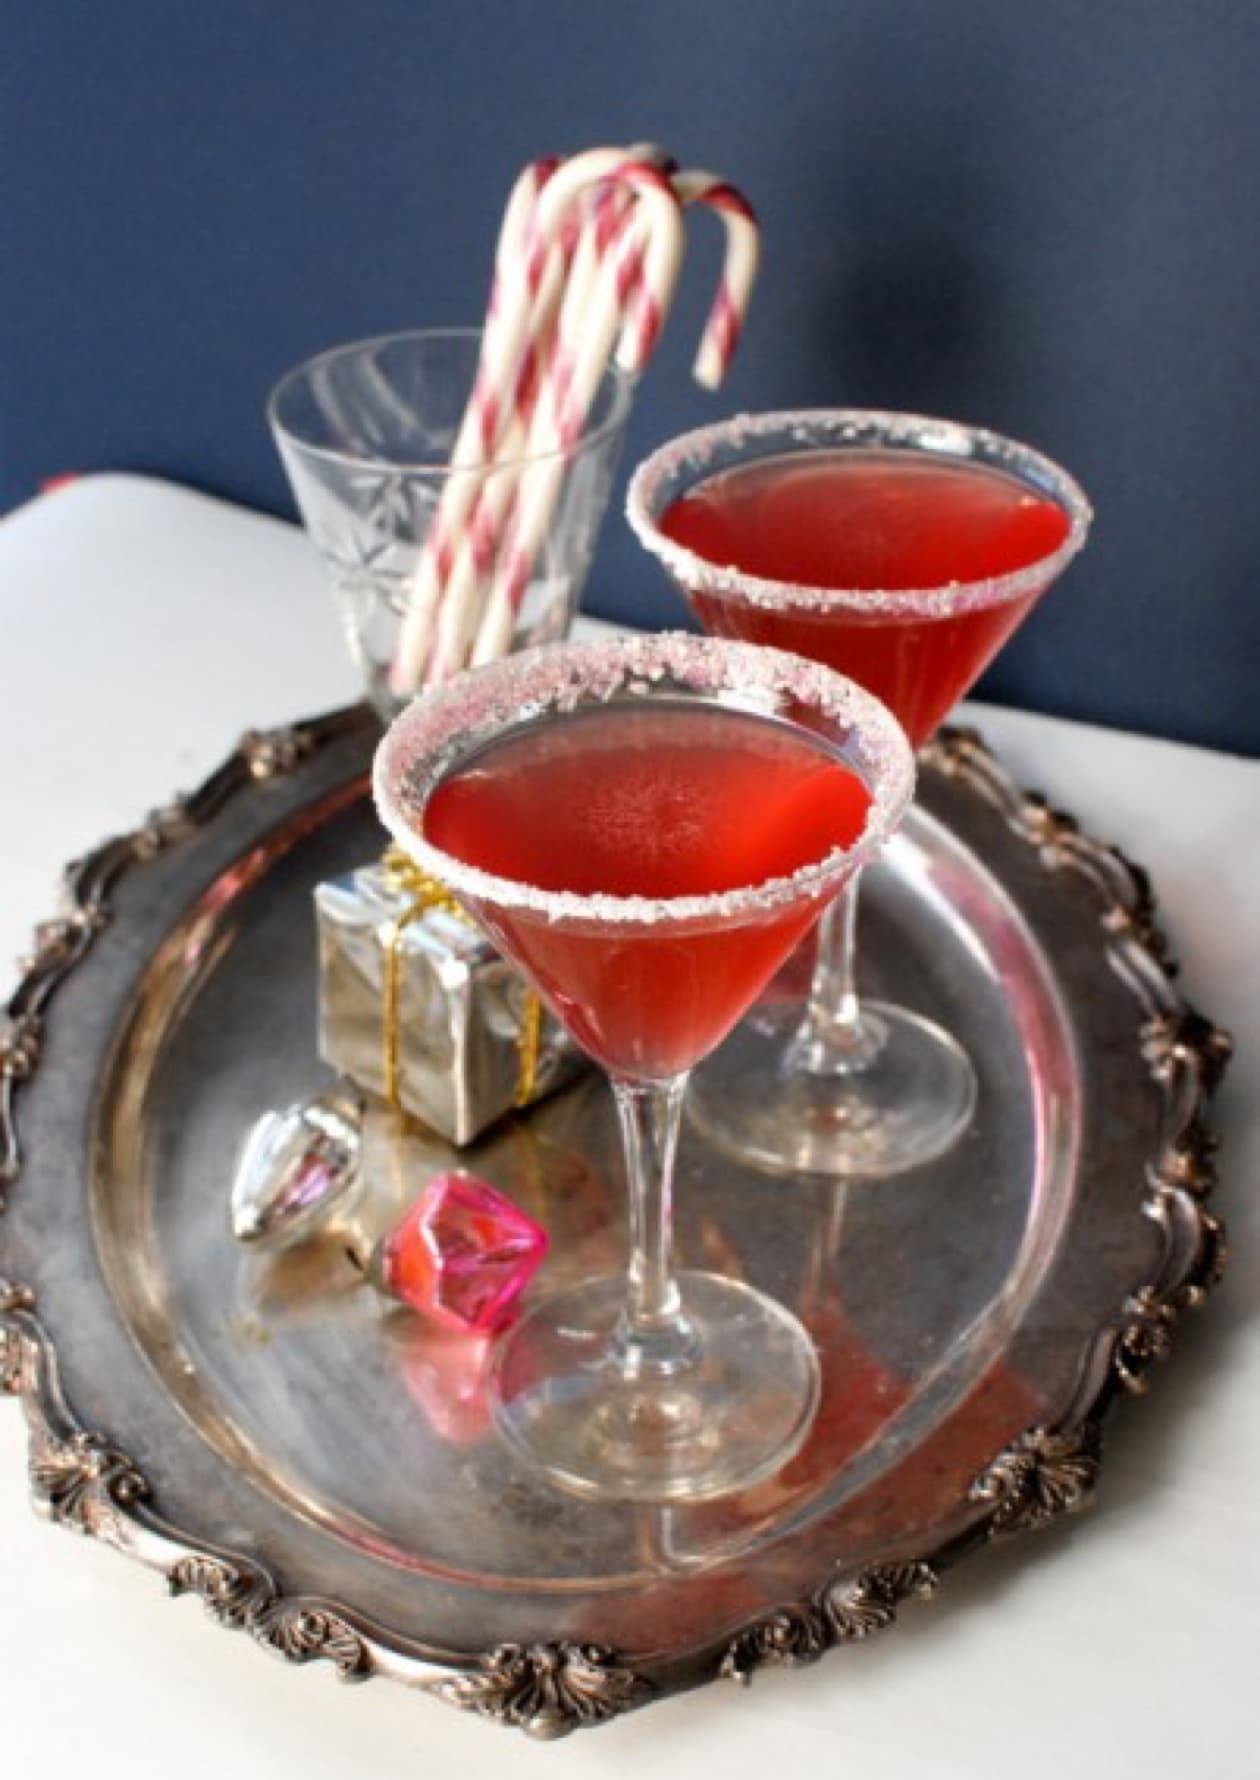 20 Boozy Beverages for the Holiday Season